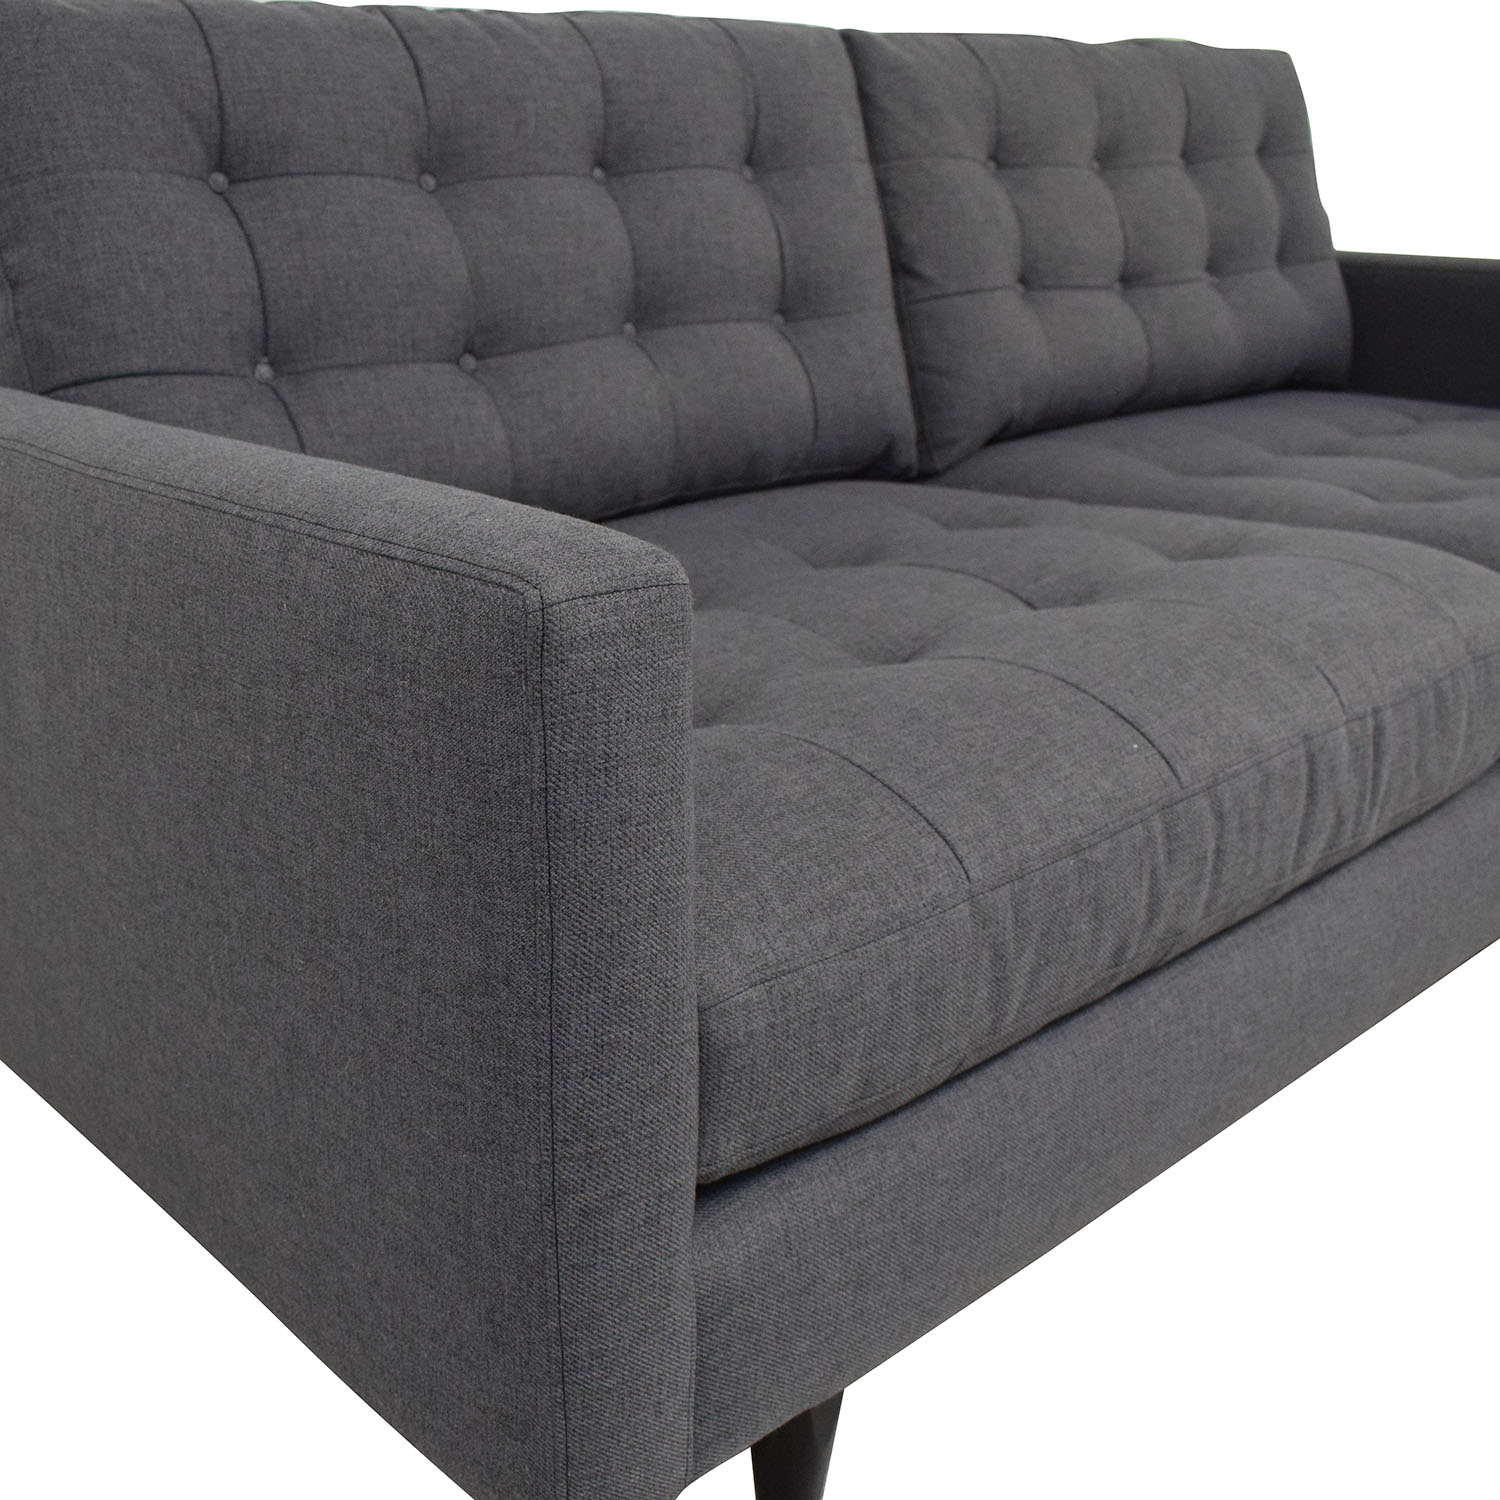 shop Crate & Barrel Petrie Apartment Sofa Crate & Barrel Loveseats